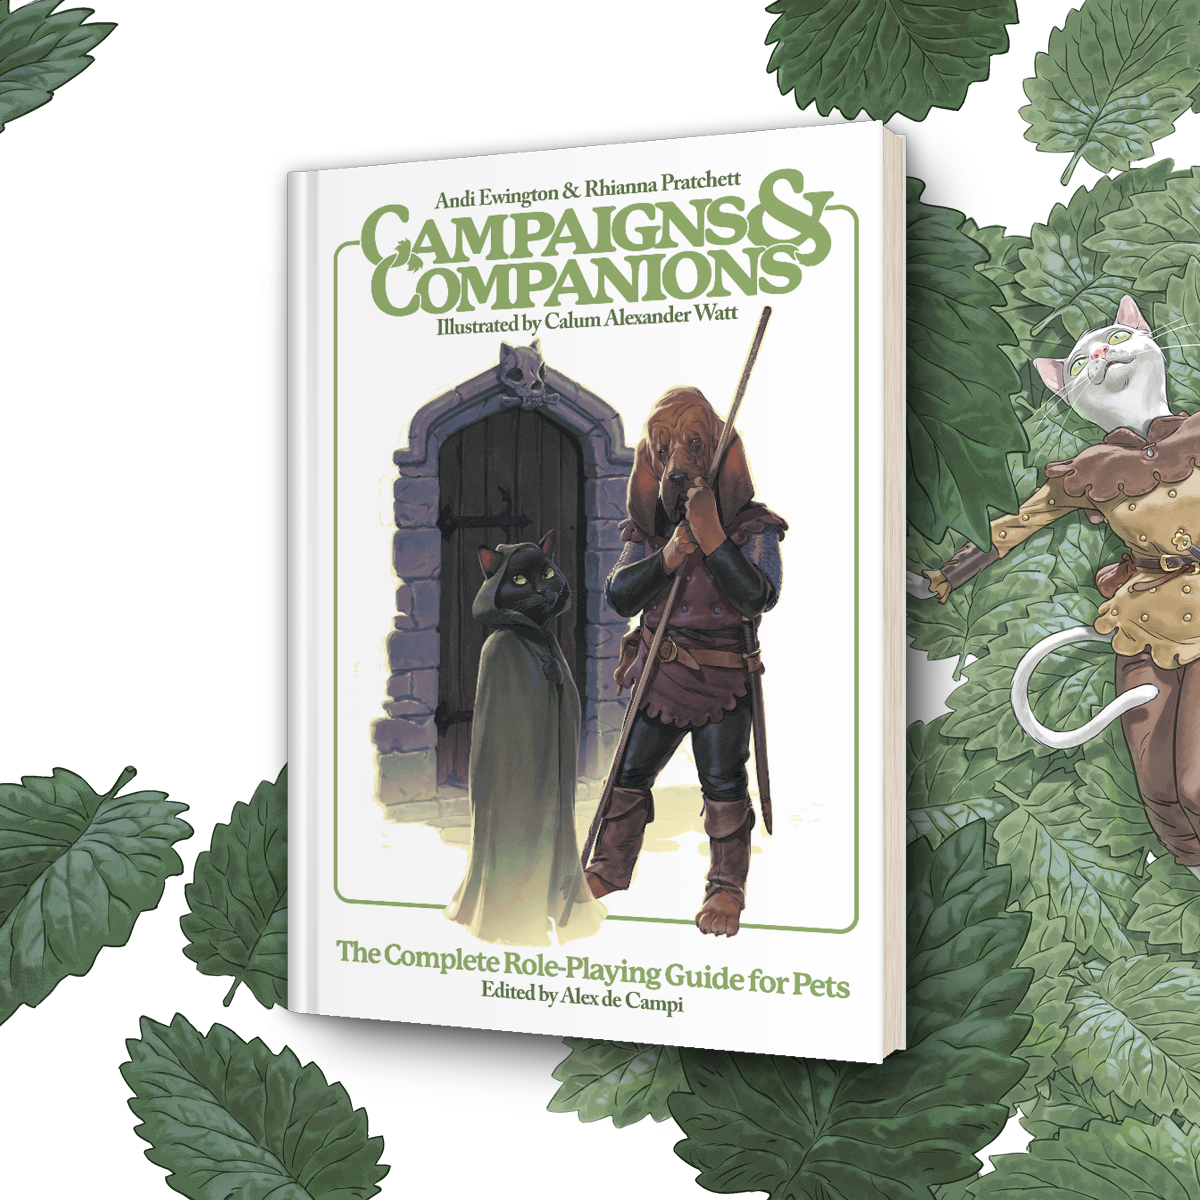 OUT NOW: Campaigns & Companions: The Complete Role-Playing Guide for Pets!